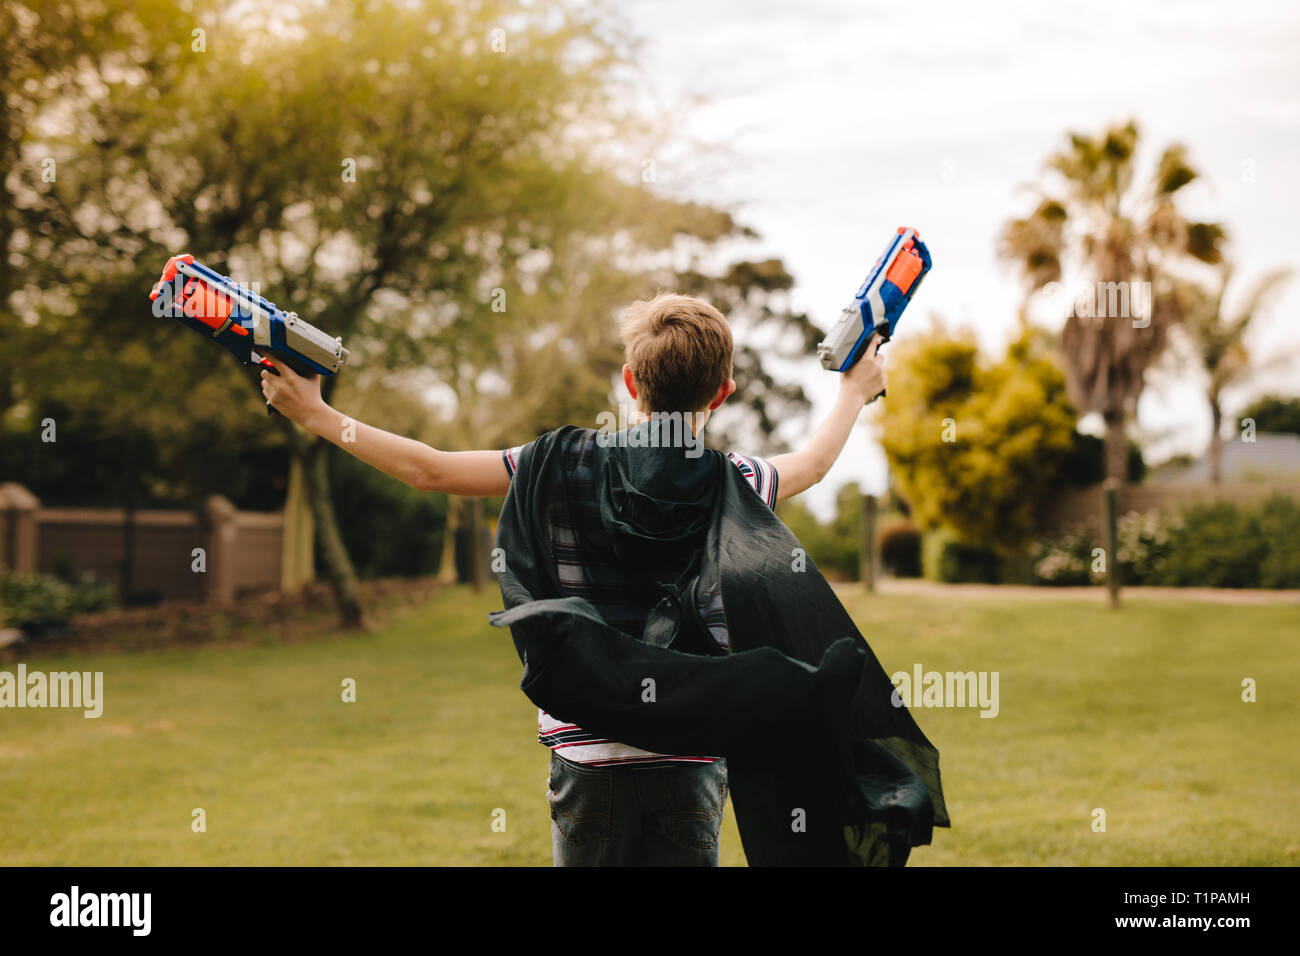 Rear view of boy wearing a black cape and running with two toy guns in hand. Young boy playing dressed up in cape. - Stock Image